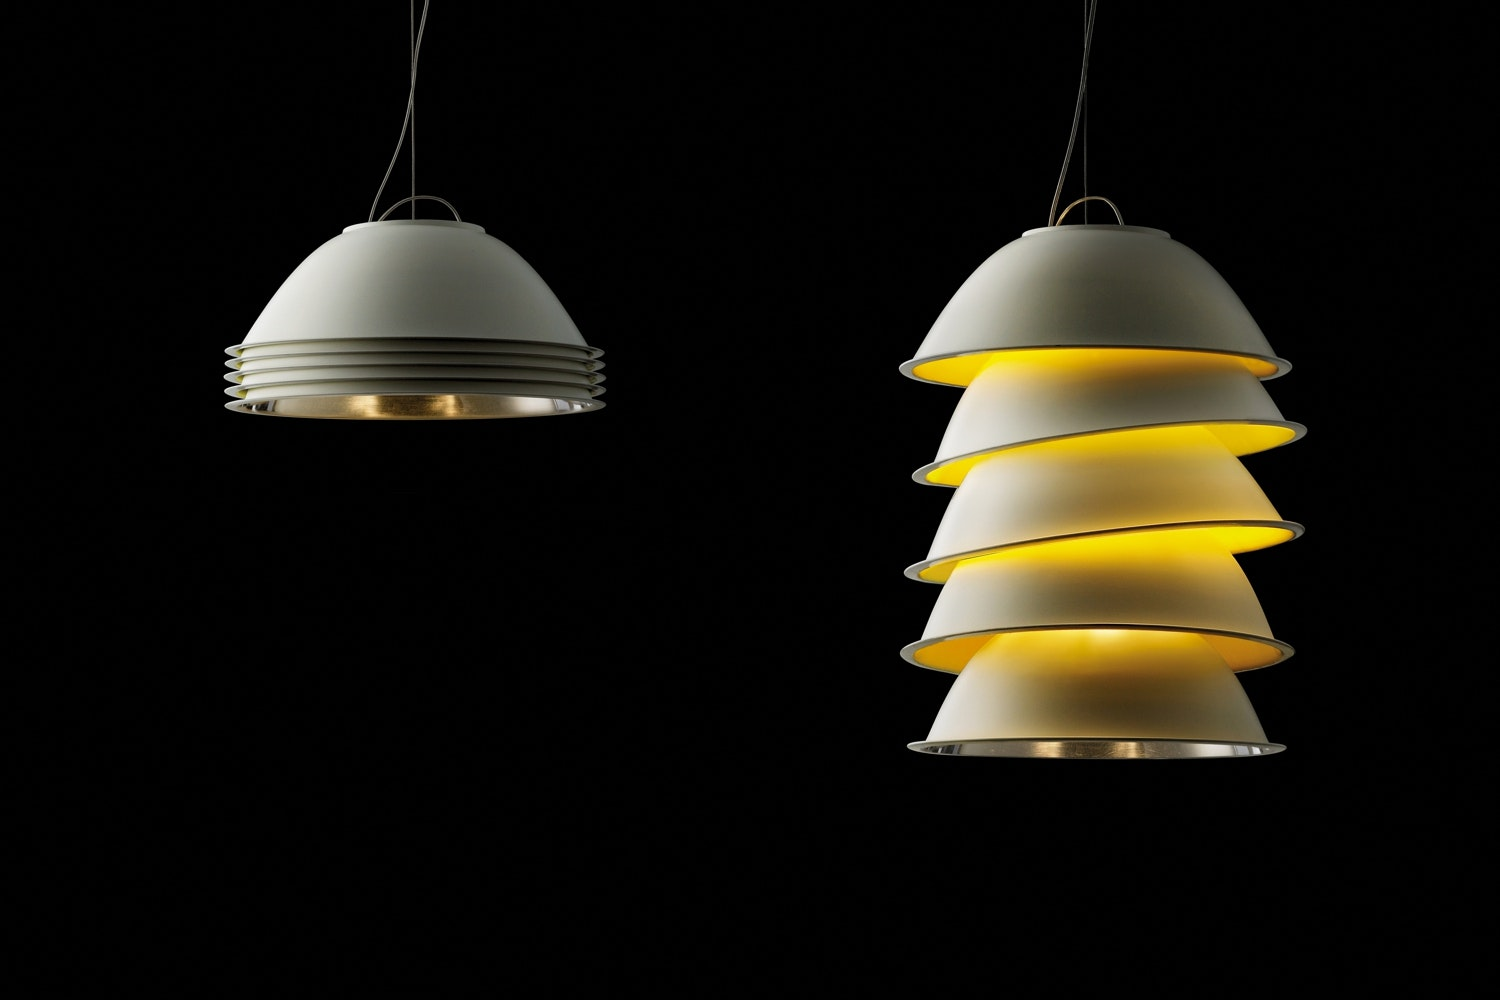 Five Pack Suspension Lamp by Axel Schmid for Ingo Maurer